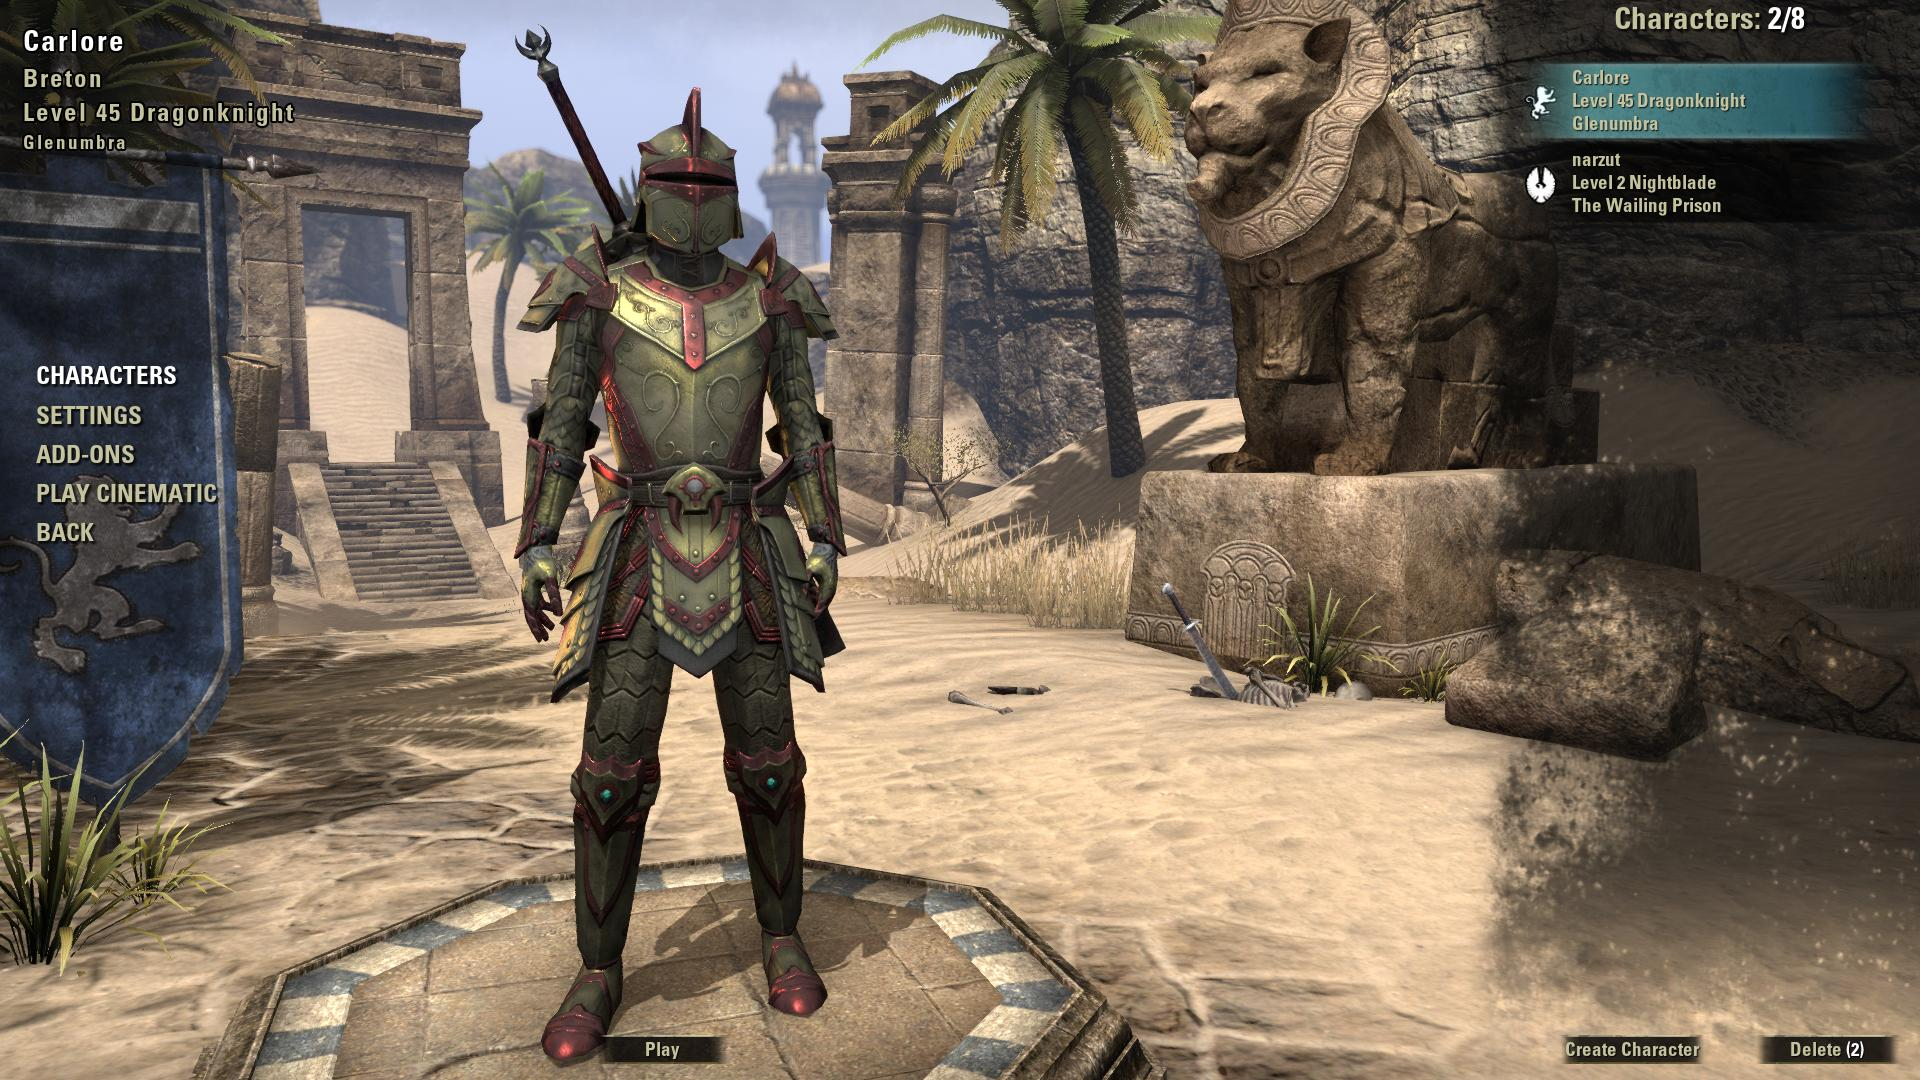 Your Teso Armor Is To Dye For A Look At Armor Dyes Teso Skyrim And Rpg News And Forums Skyrim Forums Making good use of the shouts, being. armor dyes teso skyrim and rpg